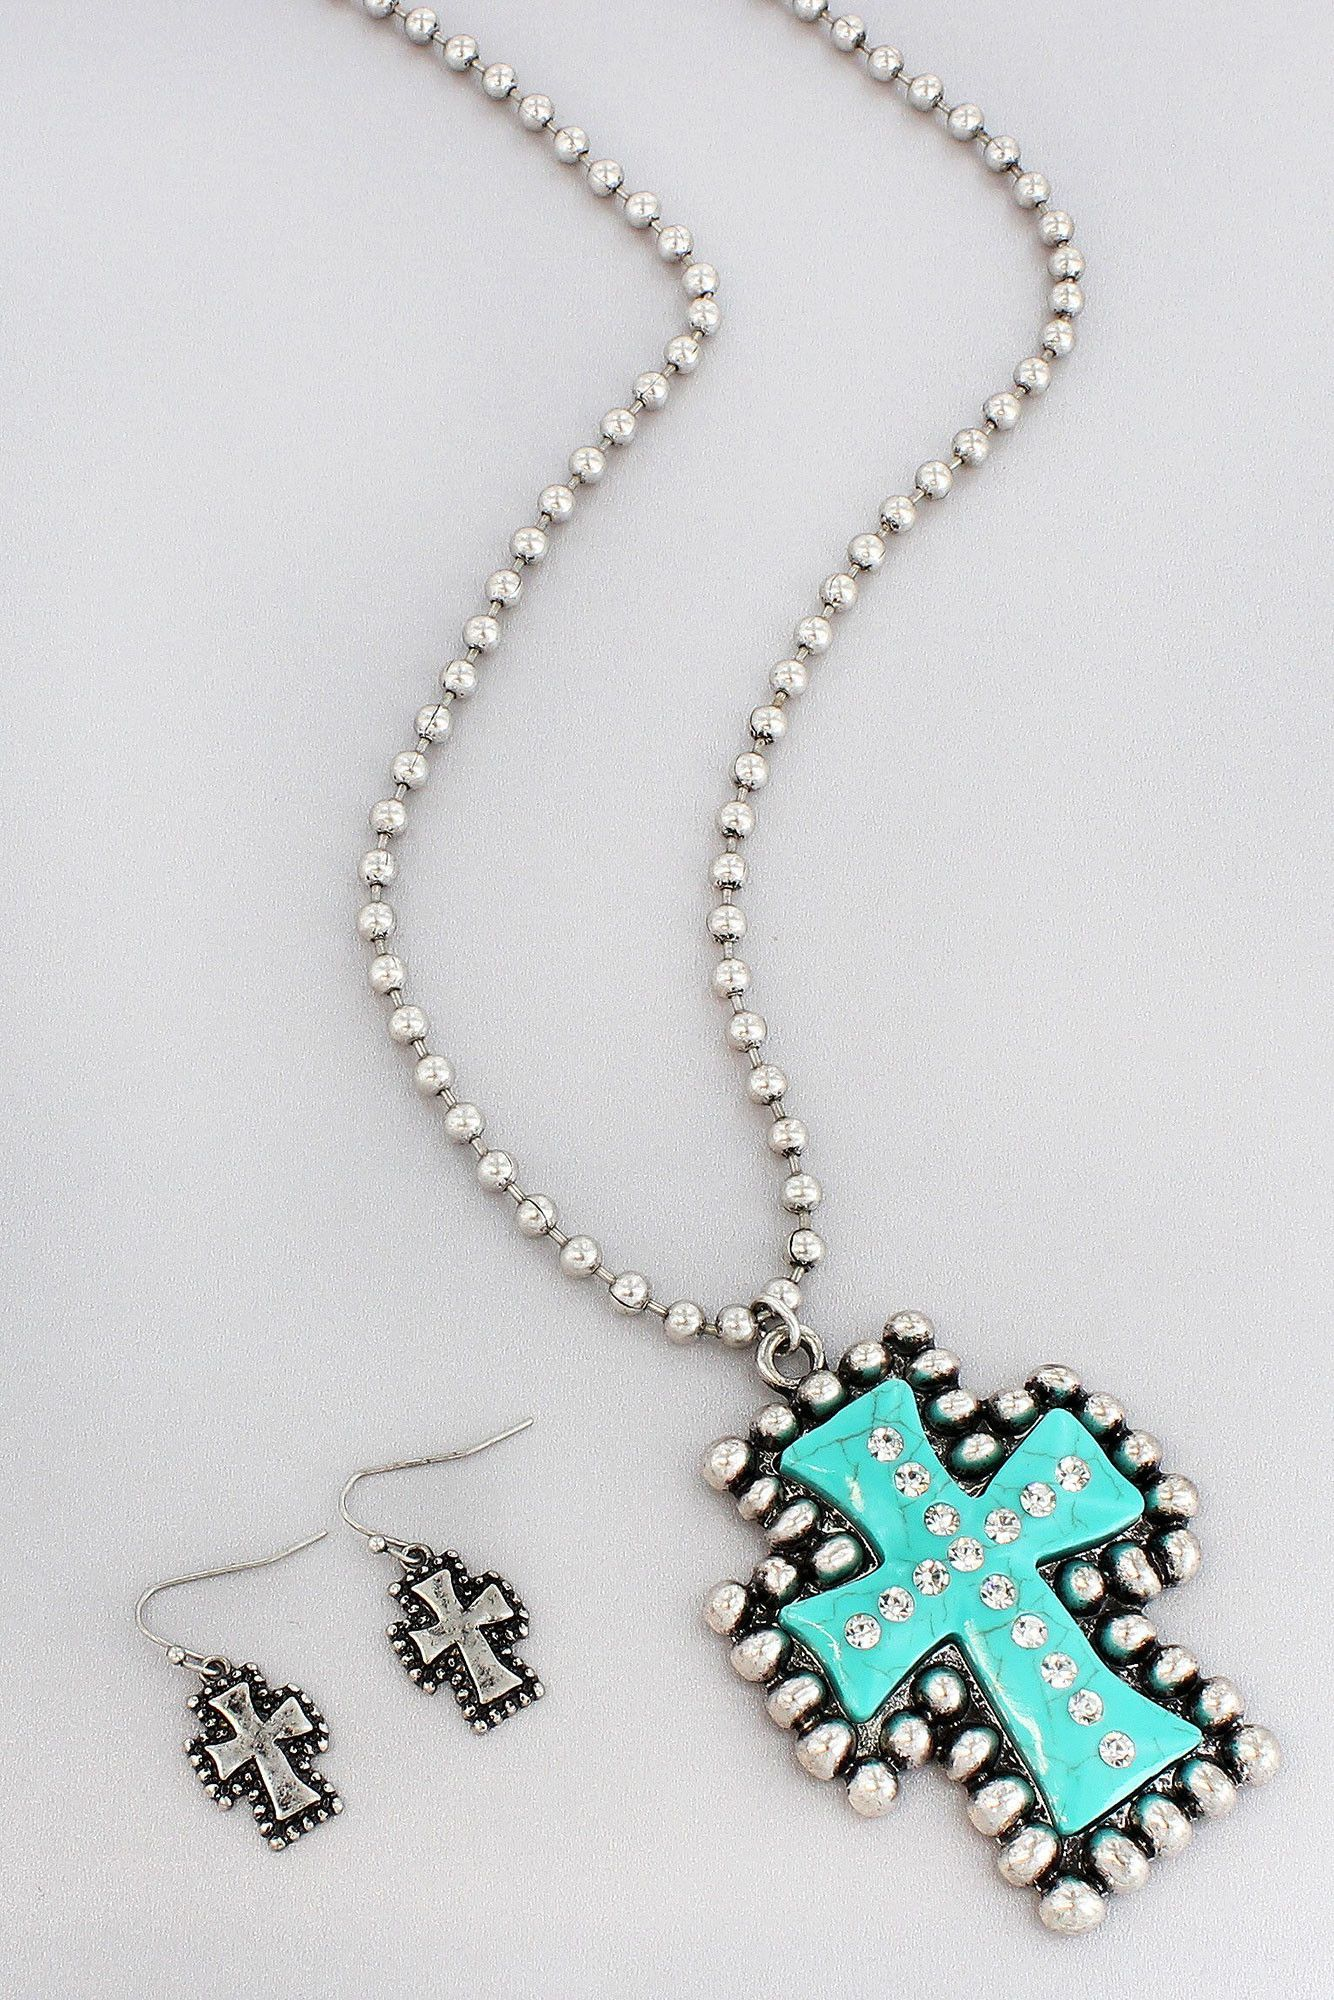 Western burnished silvertone and turquoise layered cross necklace